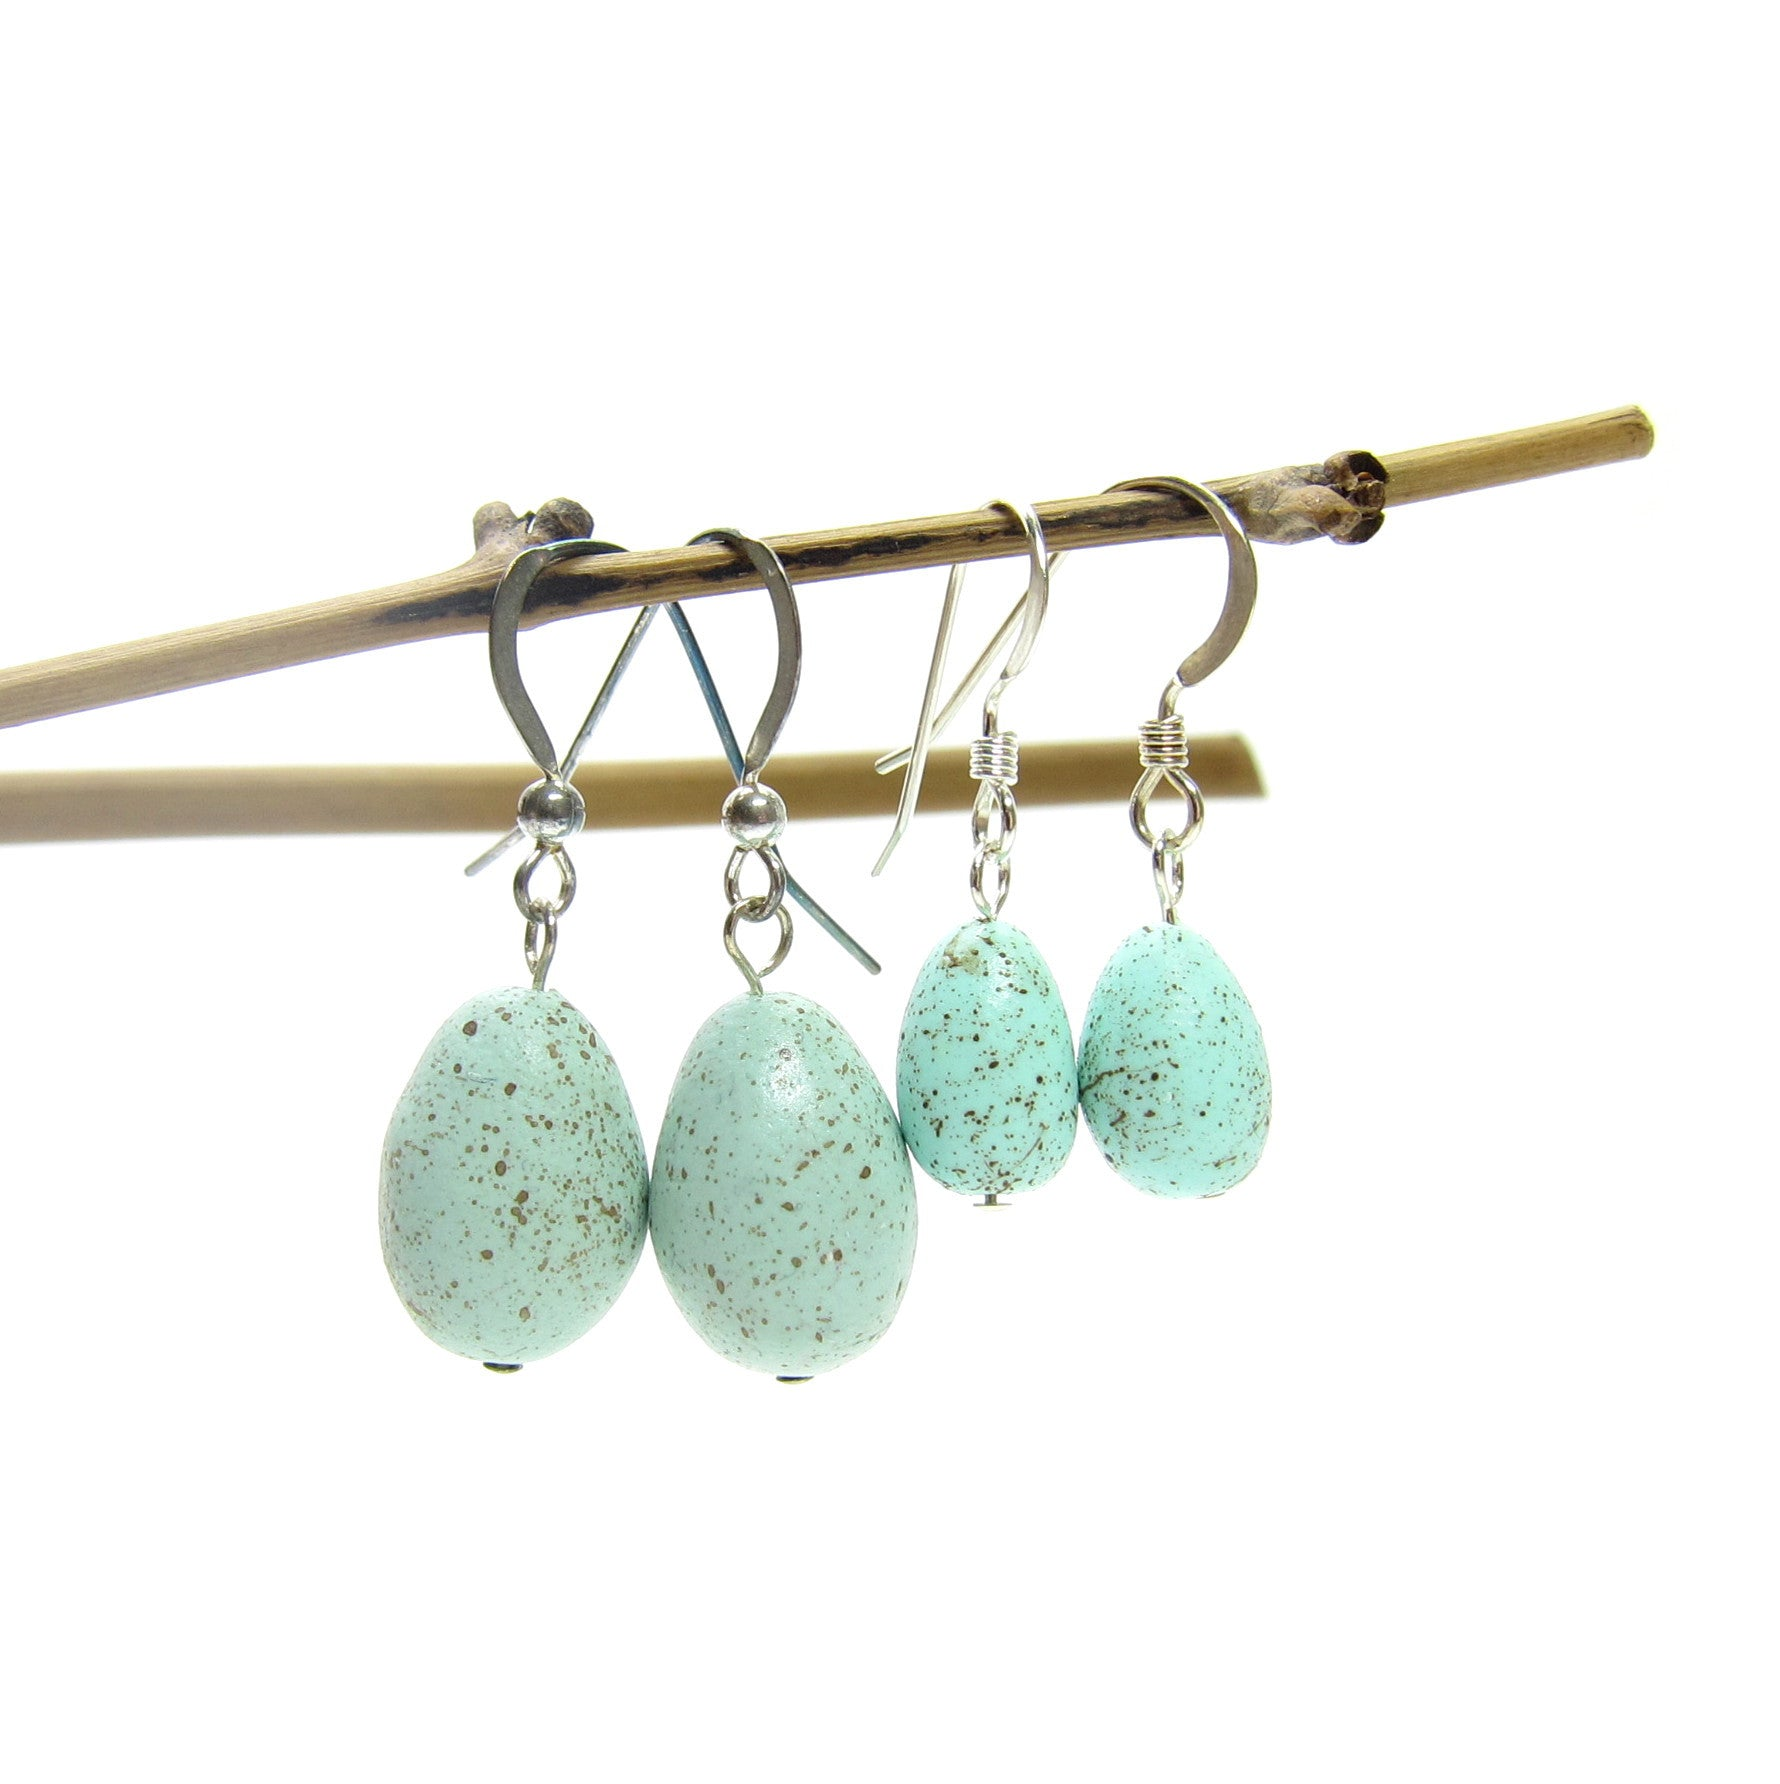 Large and small robin's egg earrings